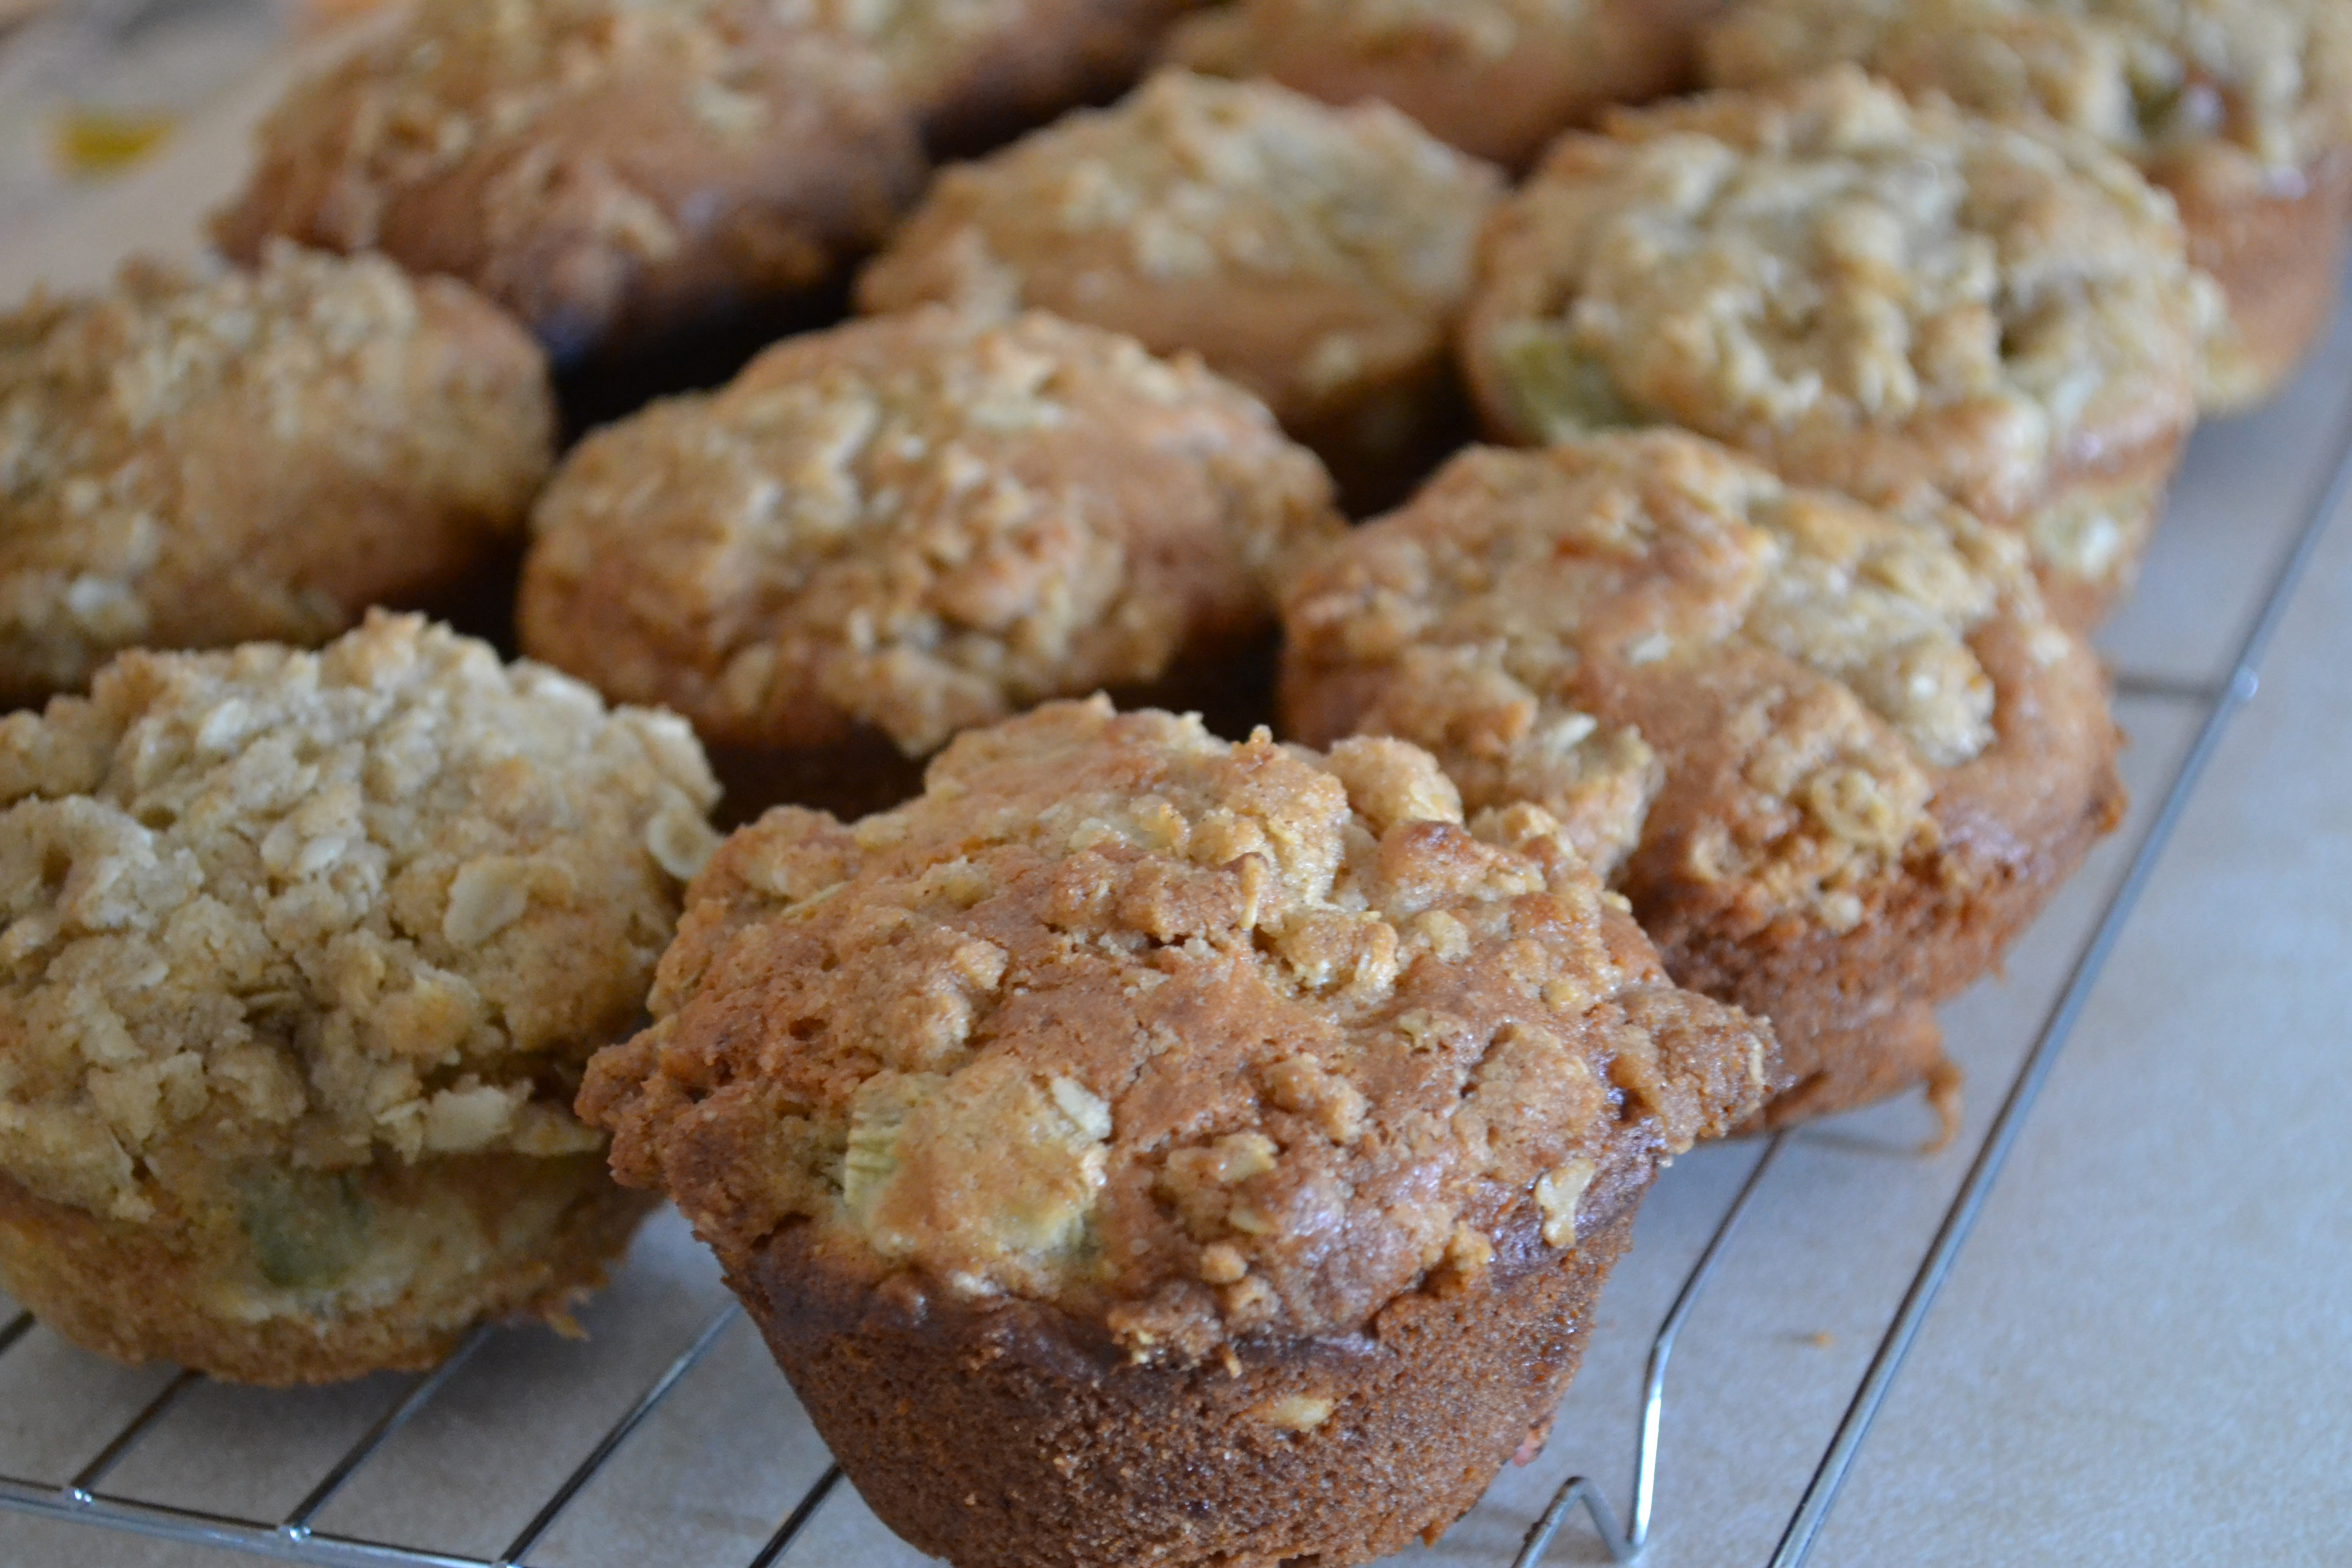 Rhubarb Muffins with Crumble Topping - Warm Vanilla Sugar